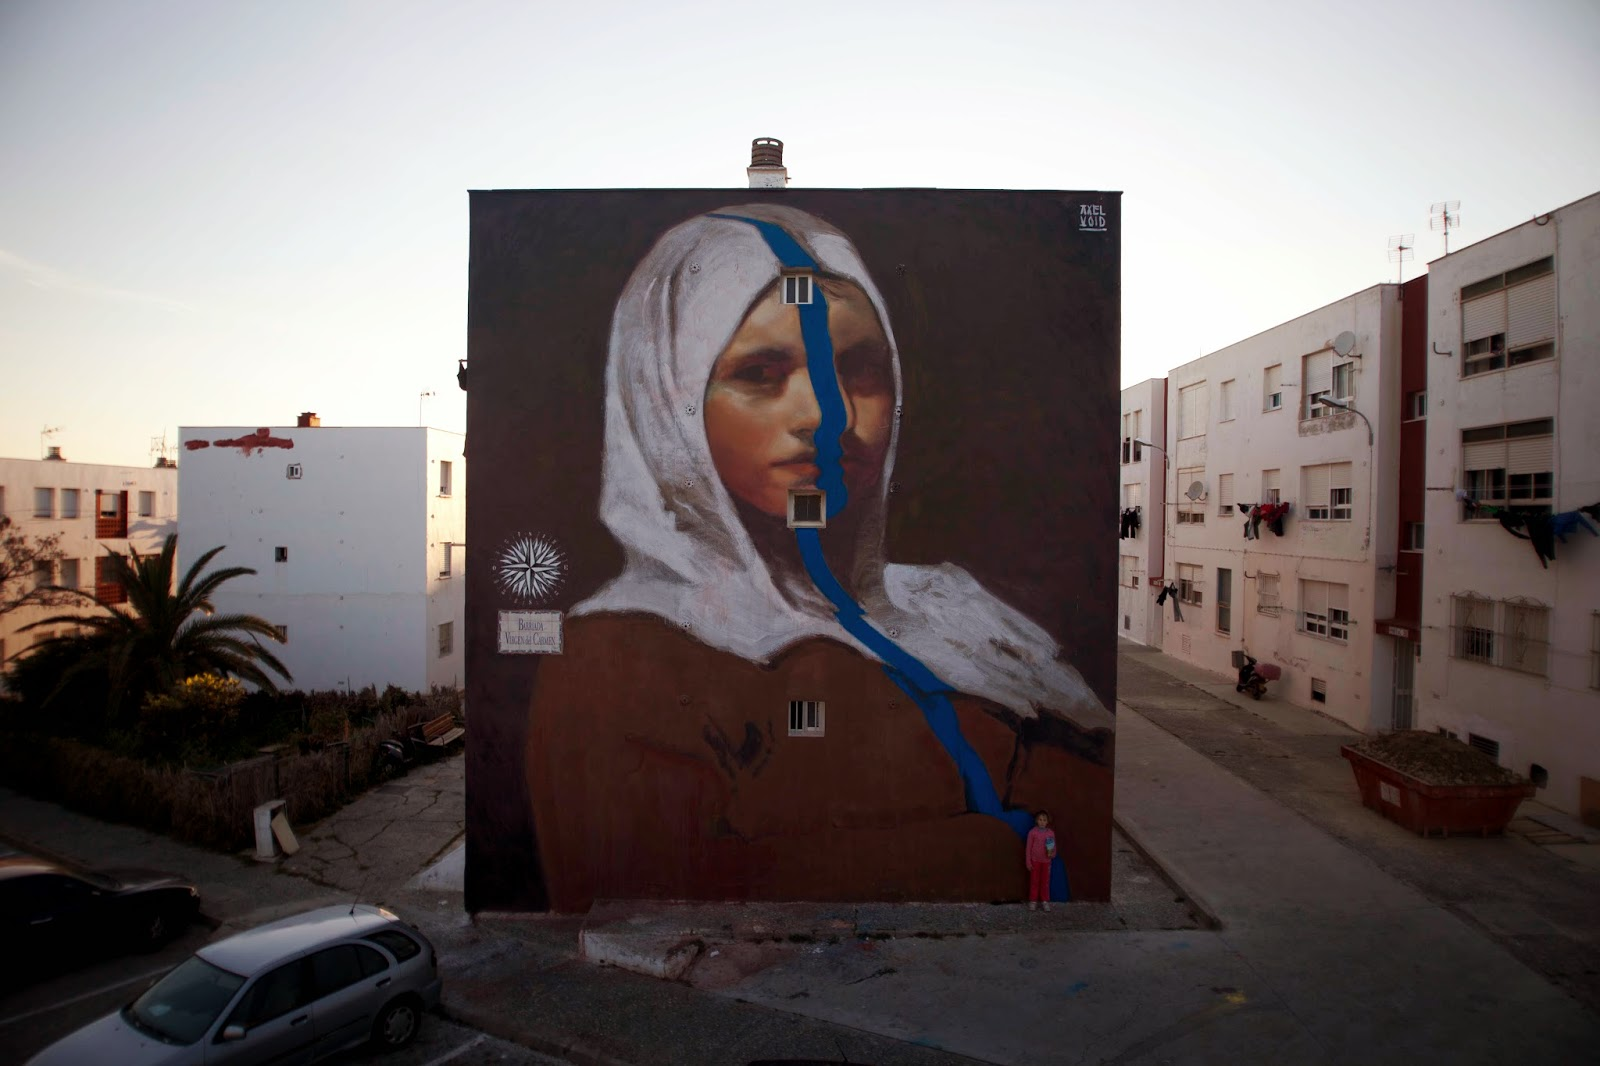 Before flying to Turin, Italy for Mission To Art, Axel Void spent the last few weeks in Southern Spain working on this massive new street art piece somewhere on the streets of Tarifa.